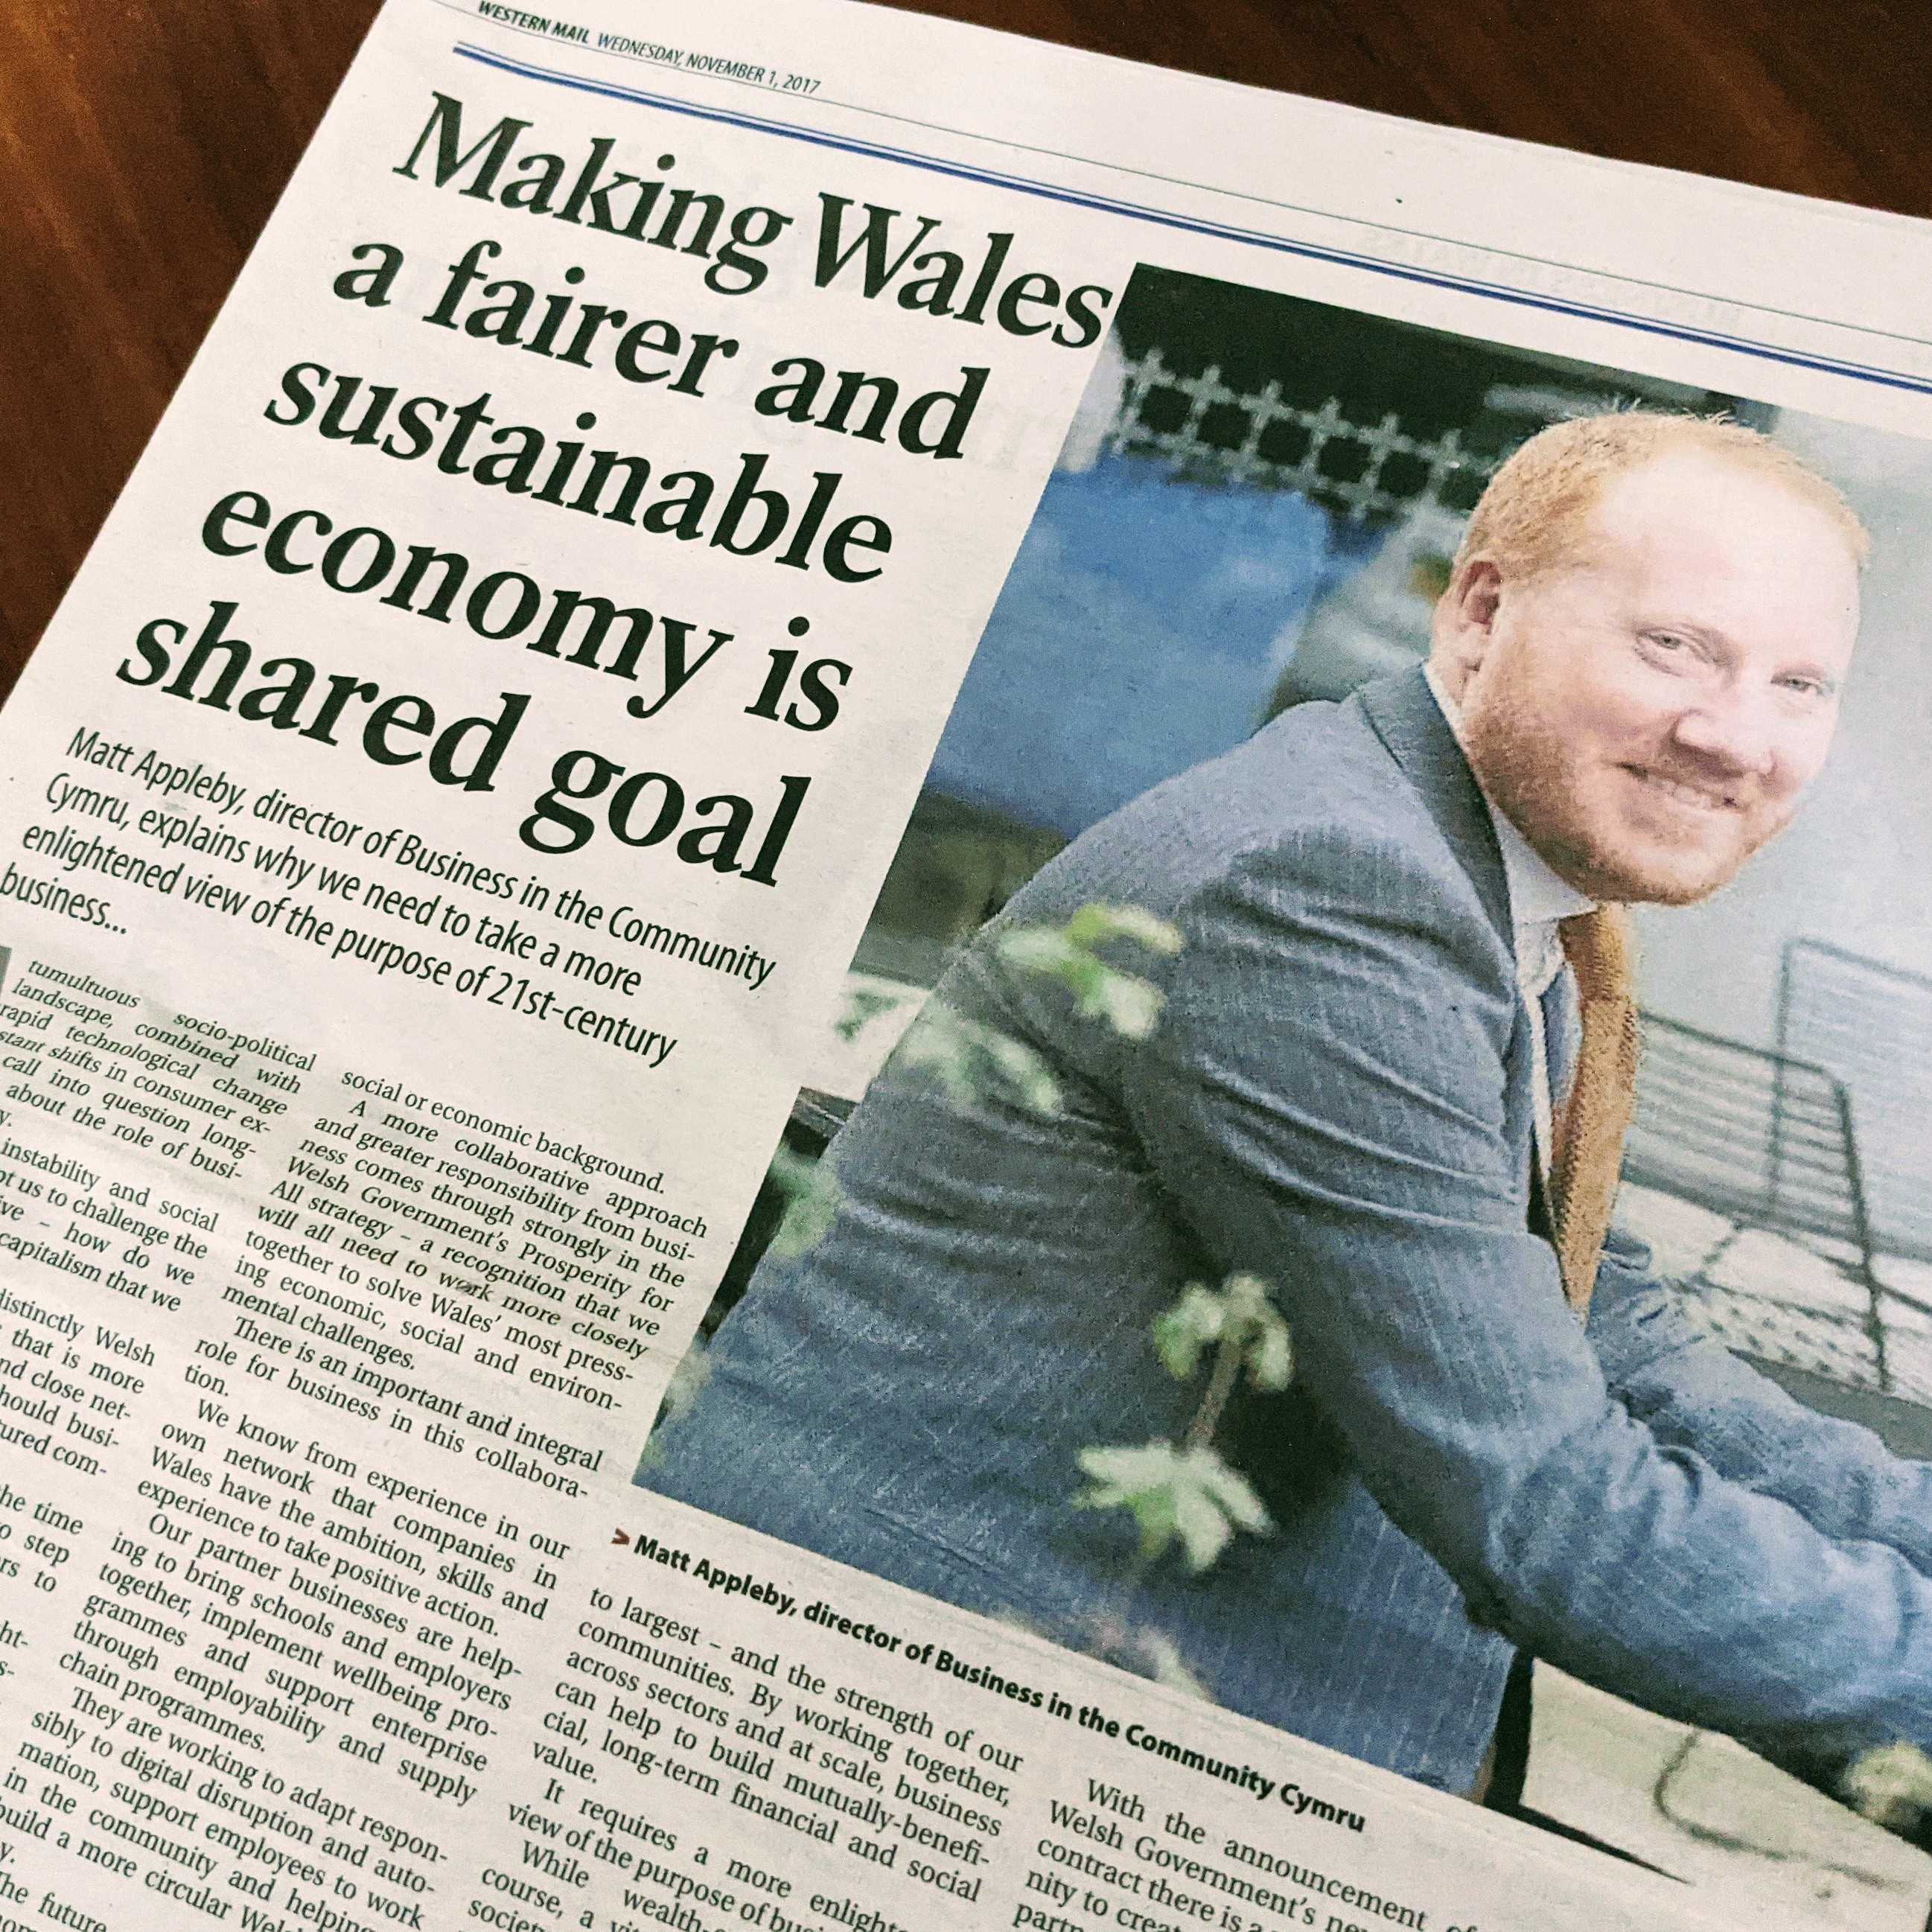 Media feature - making Wales fairer and sustainable economy - Matt Appleby PR Cardiff